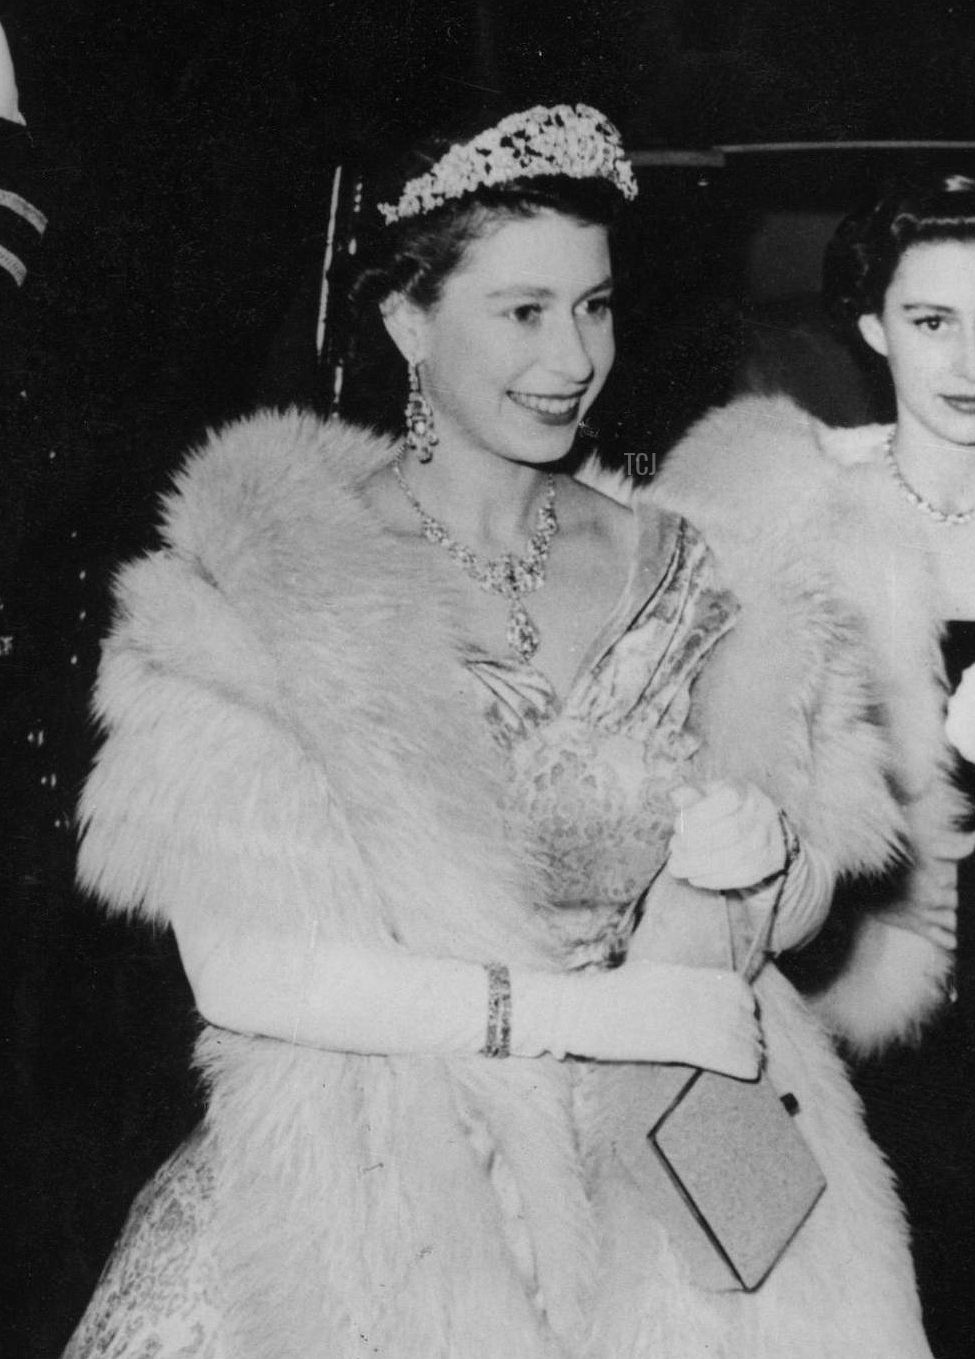 Queen Elizabeth II attends the Royal Variety Performance at the Palladium in London, November 1952